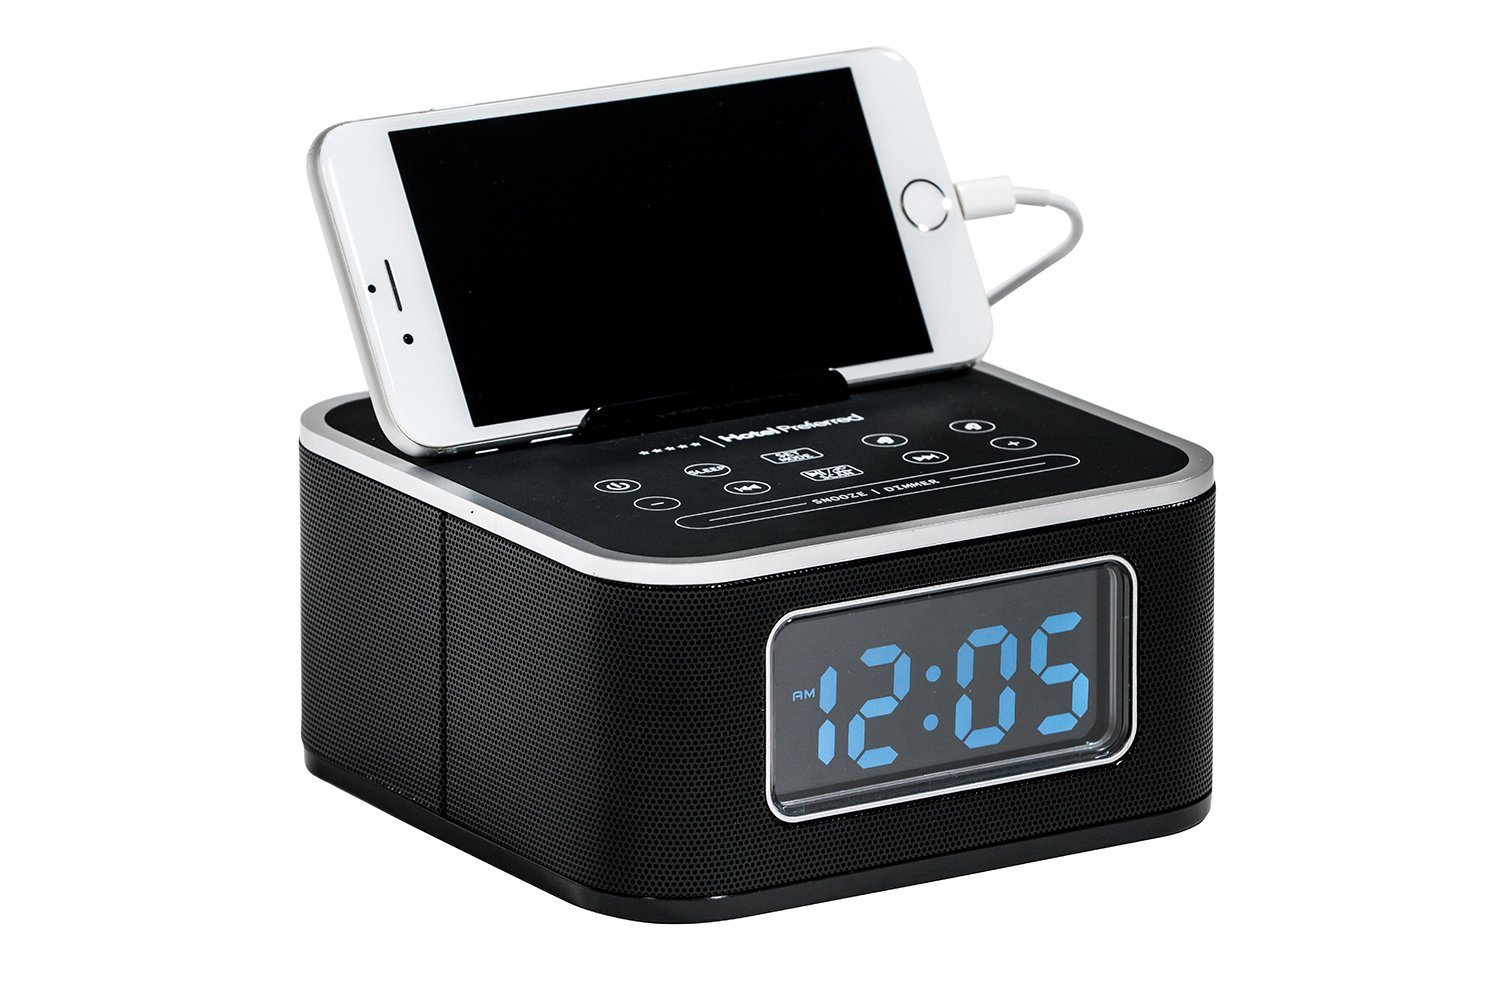 Electronics & Appliances - HPCLKR02 Alarm Clock With Charging Station